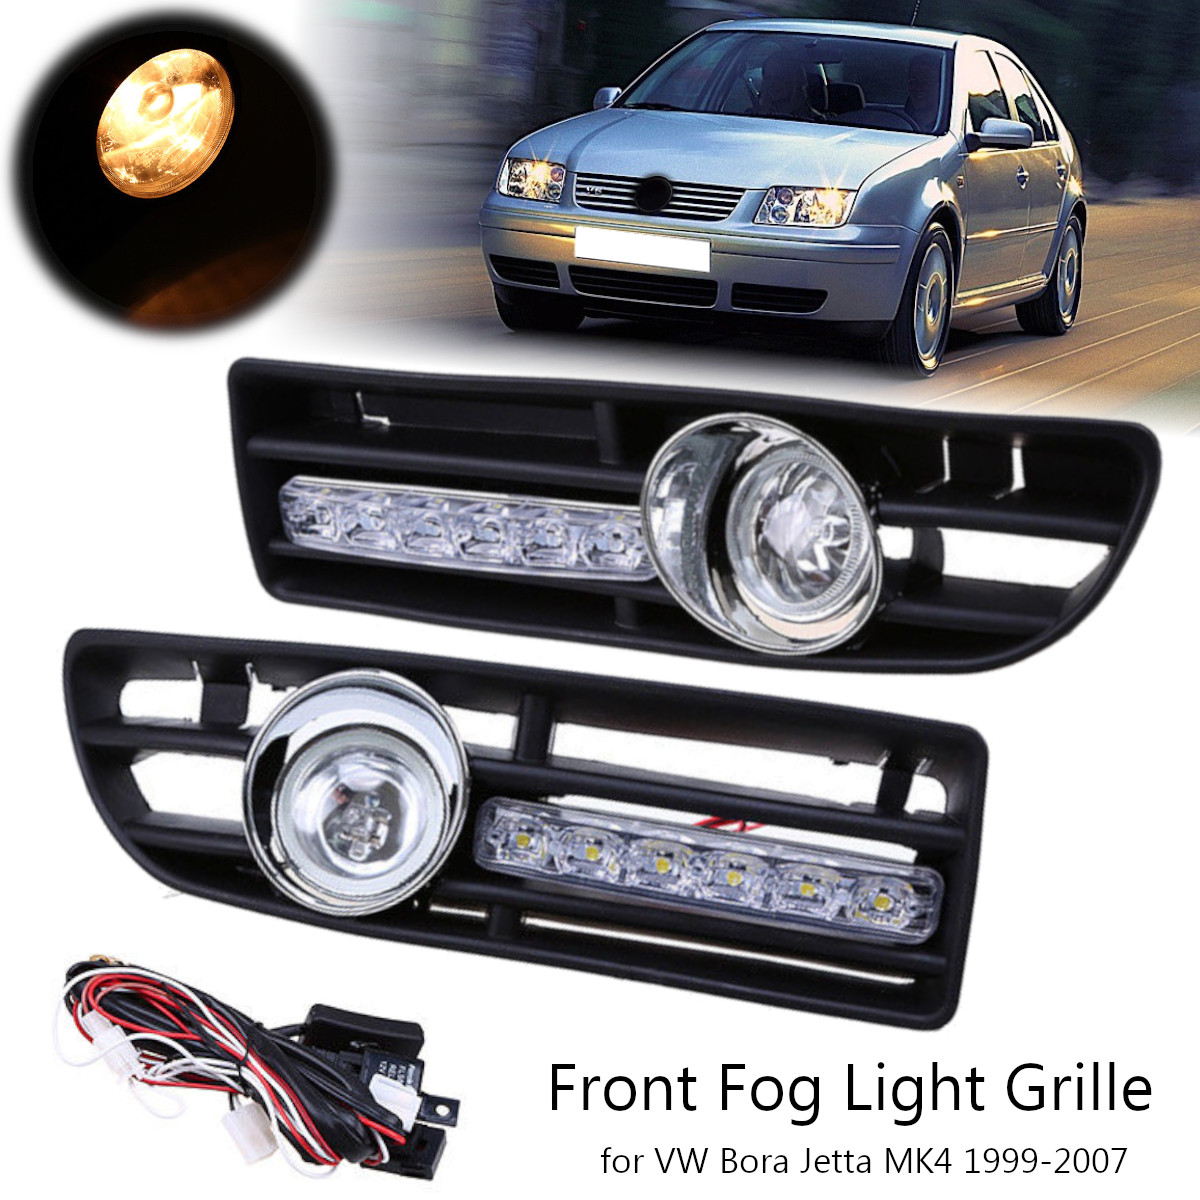 2Pcs Car Front Lower Bumper Fog Light Cover Grille with LED DRL for VW Bora Jetta MK4 1999-2007 areyourshop car front bumper grill led fog light grille with led drl lamp for vw jetta mk6 sagitar 2011 2012 black car covers